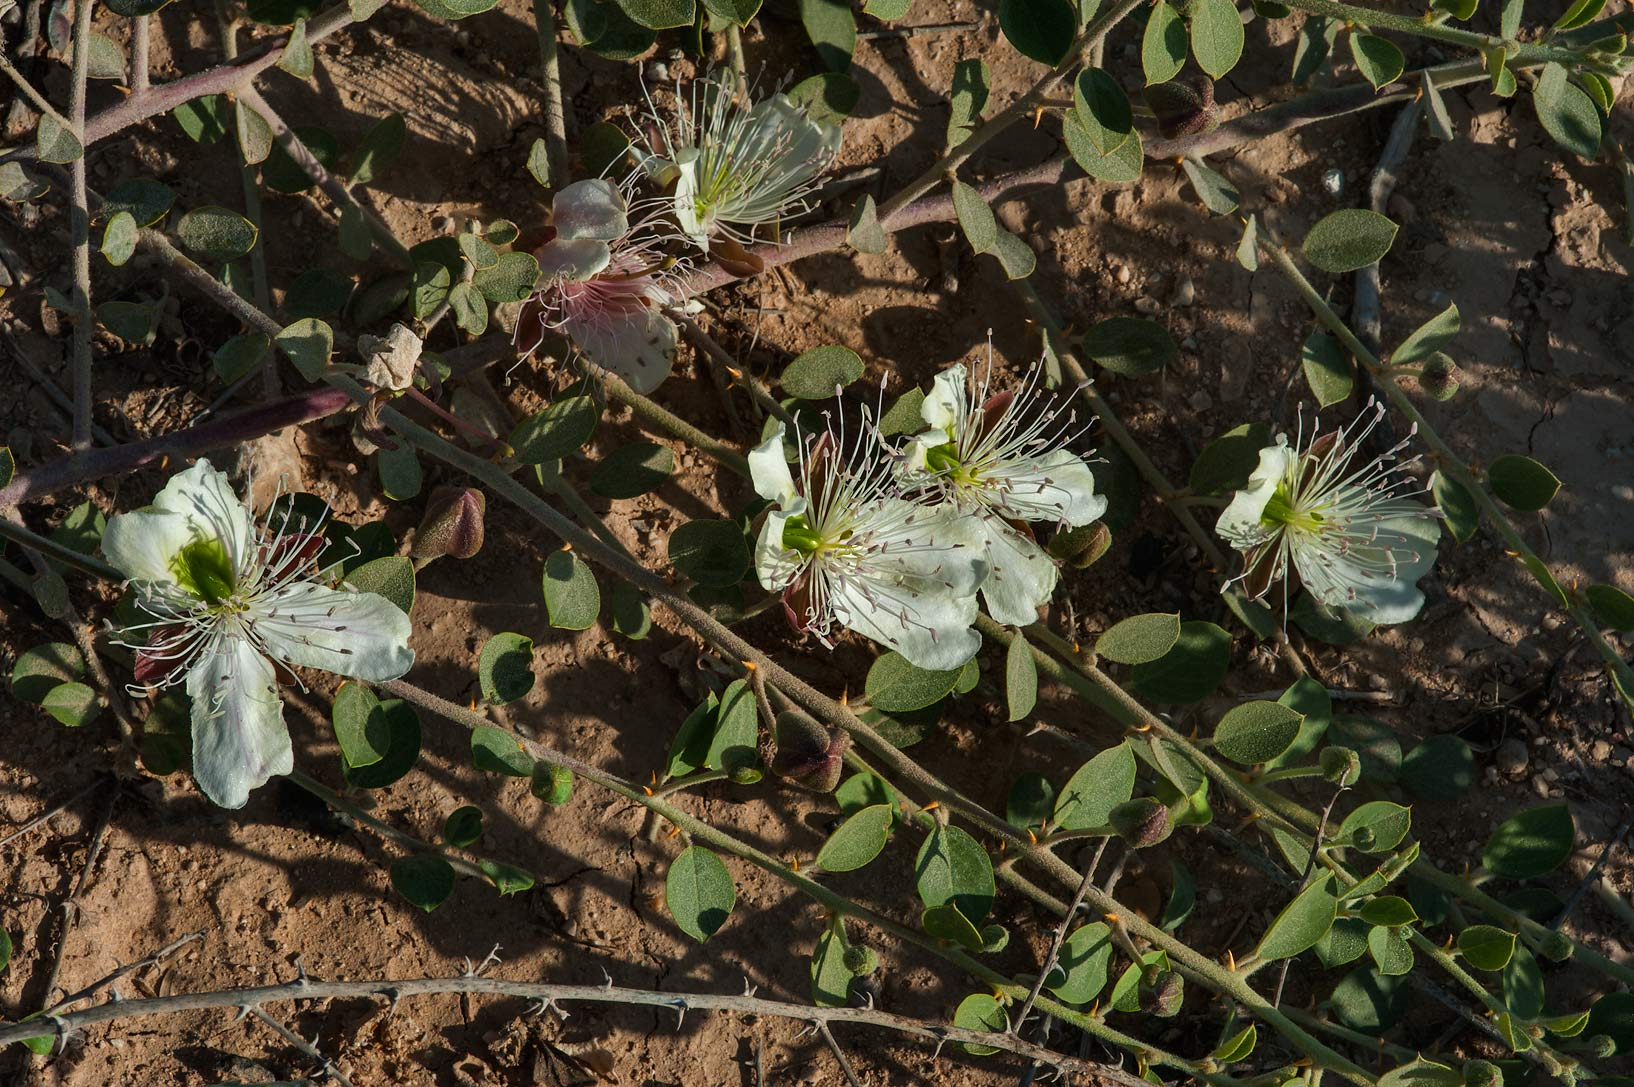 Long shoots of Caper plant (Capparis spinosa) in...Bin Husayn near Simaisma. Qatar